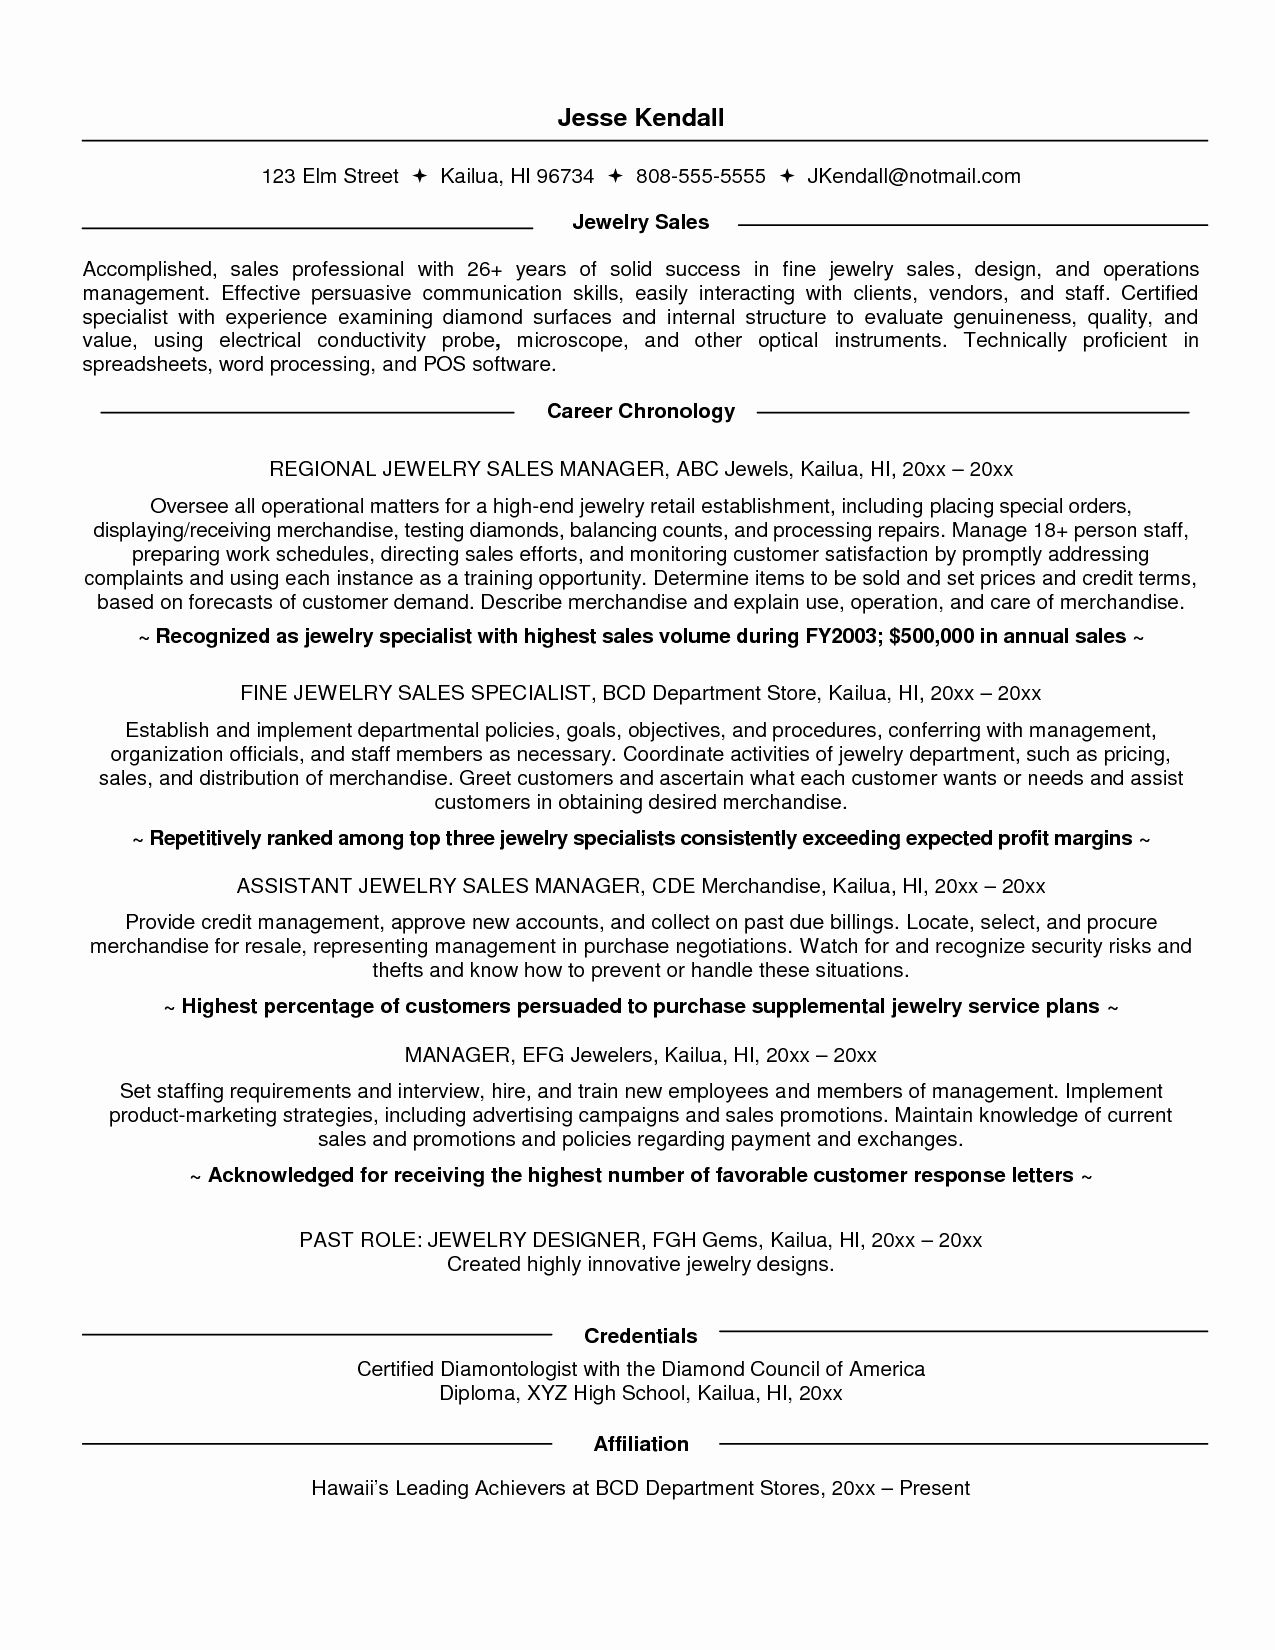 Resume Sales associate Job Description Resume Ideas